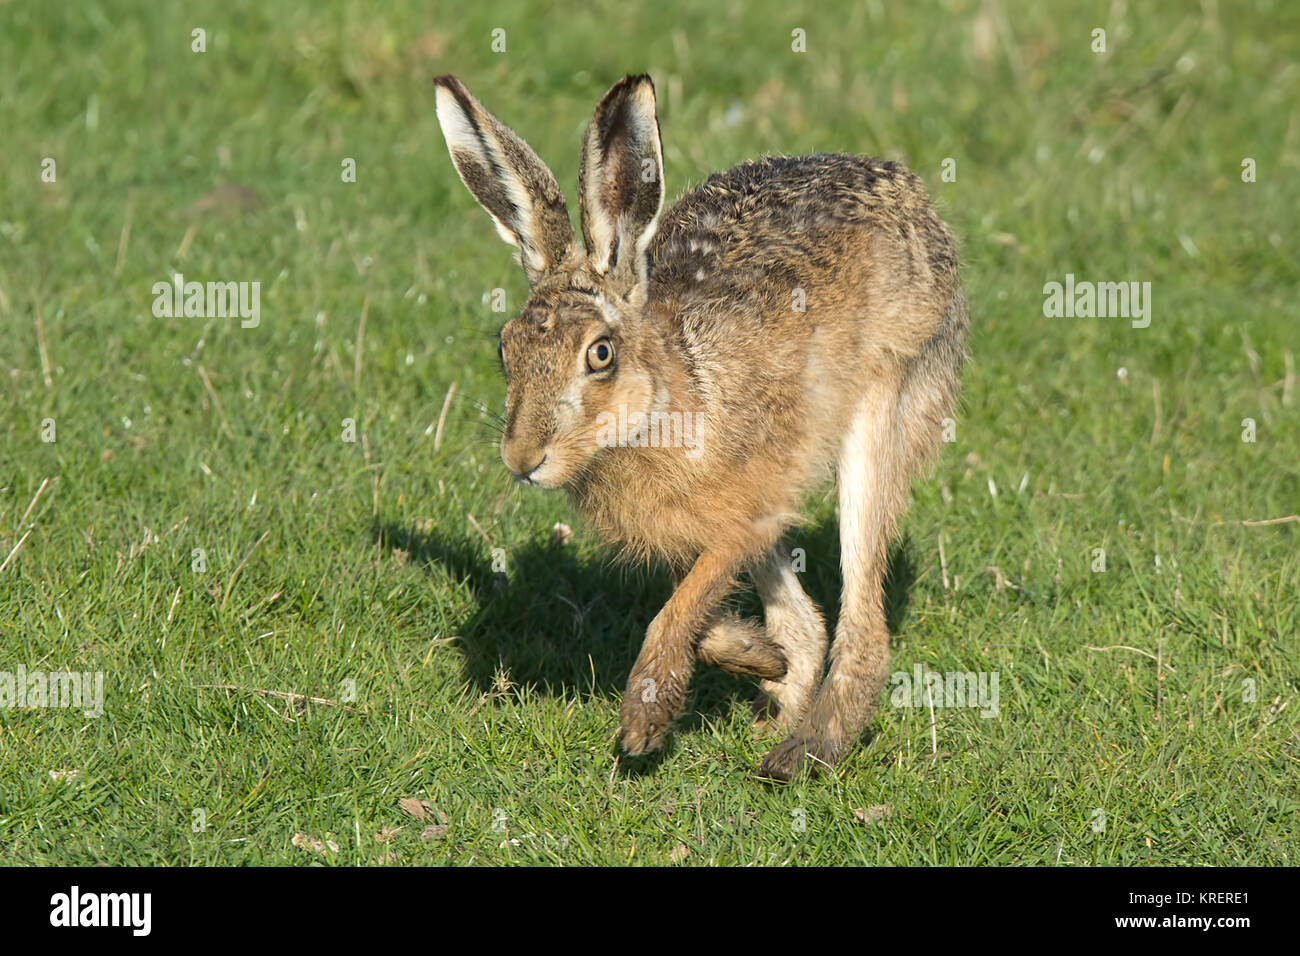 Brown Hare running, from Elmley nature reserve - Stock Image